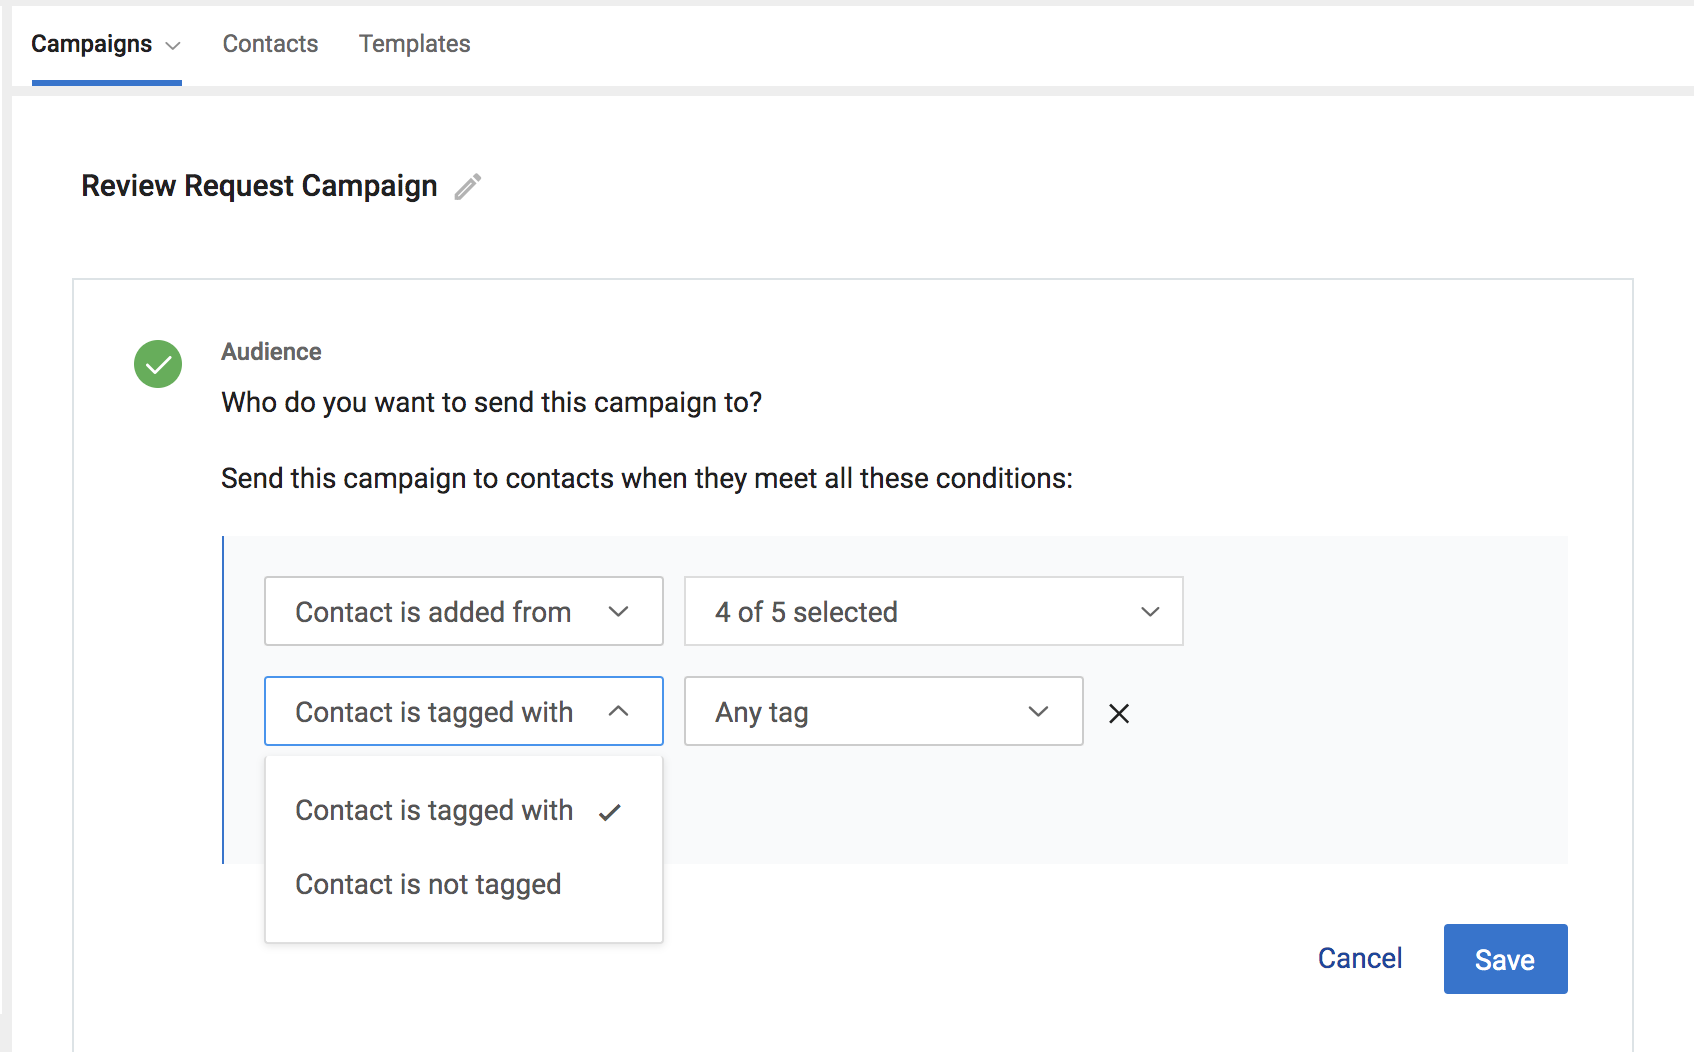 Birdeye enhances contact tag selection for automated campaigns